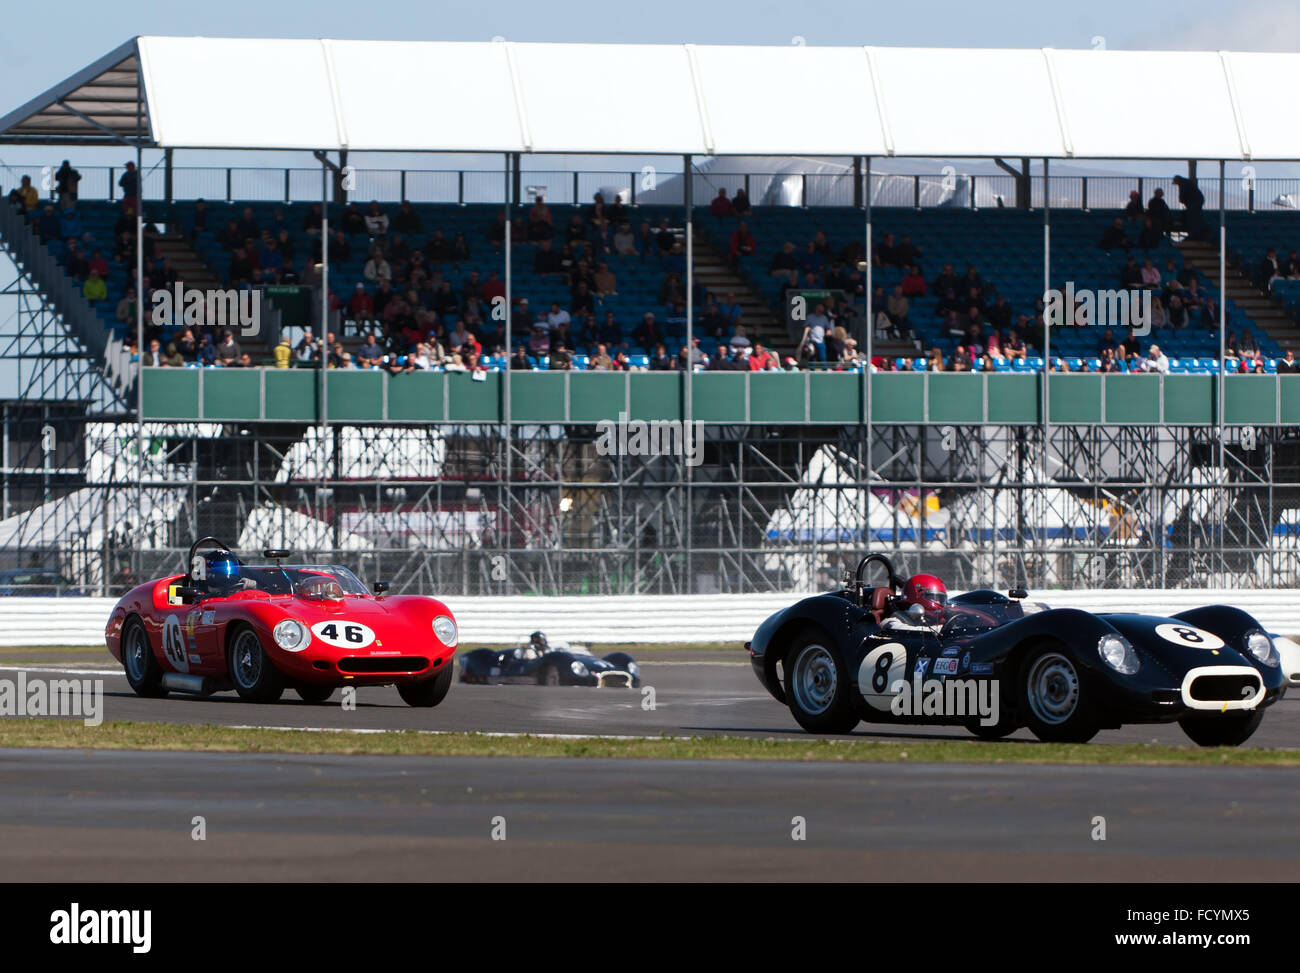 A Ferrari 246S and a Lister Knobbly, competing in the Stirling Moss Trophy for Pre' 61 Sports Cars at the Silverstone - Stock Image